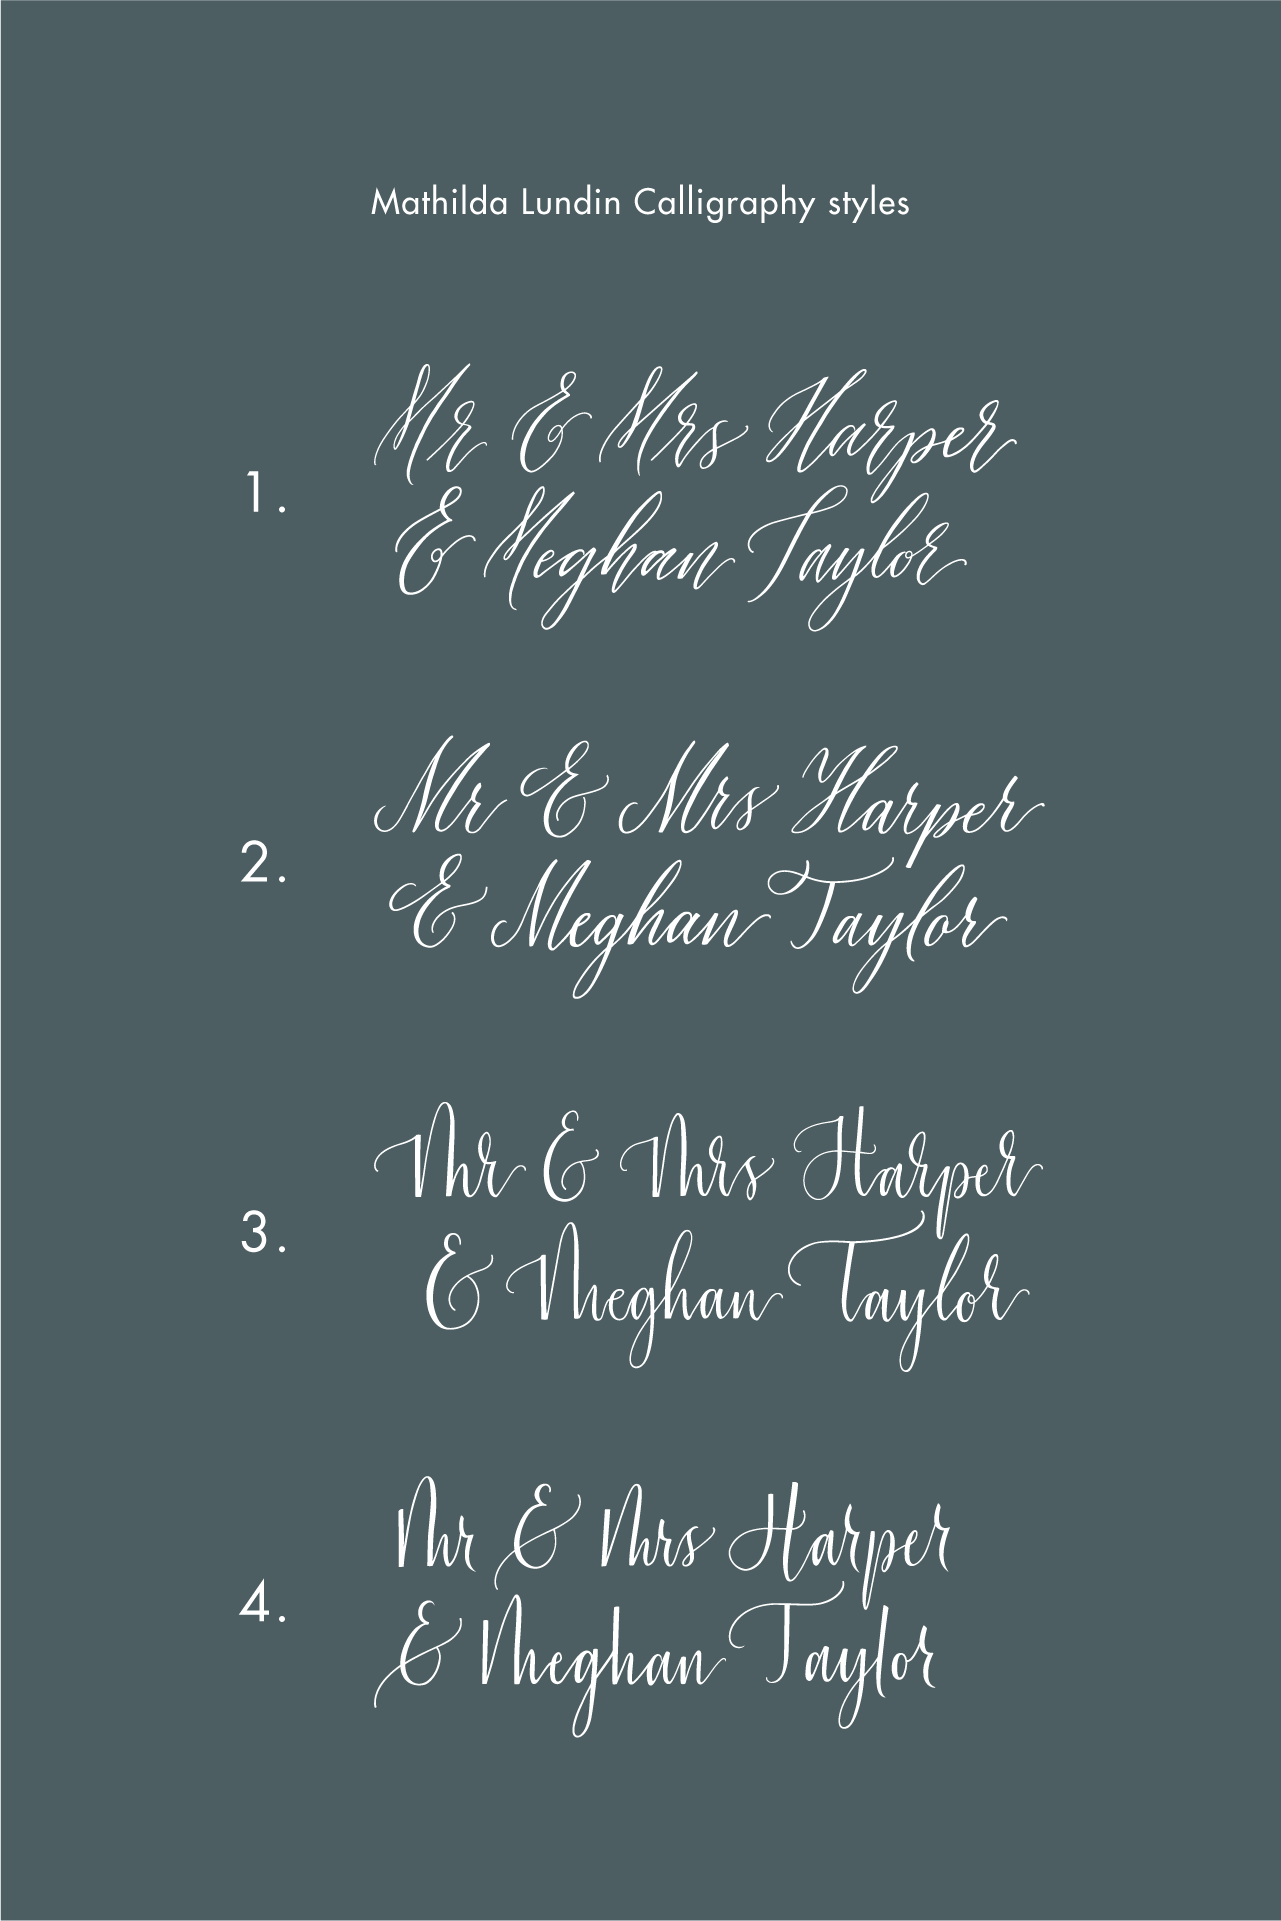 mathilda-lundin-calligraphy-styles_1.png